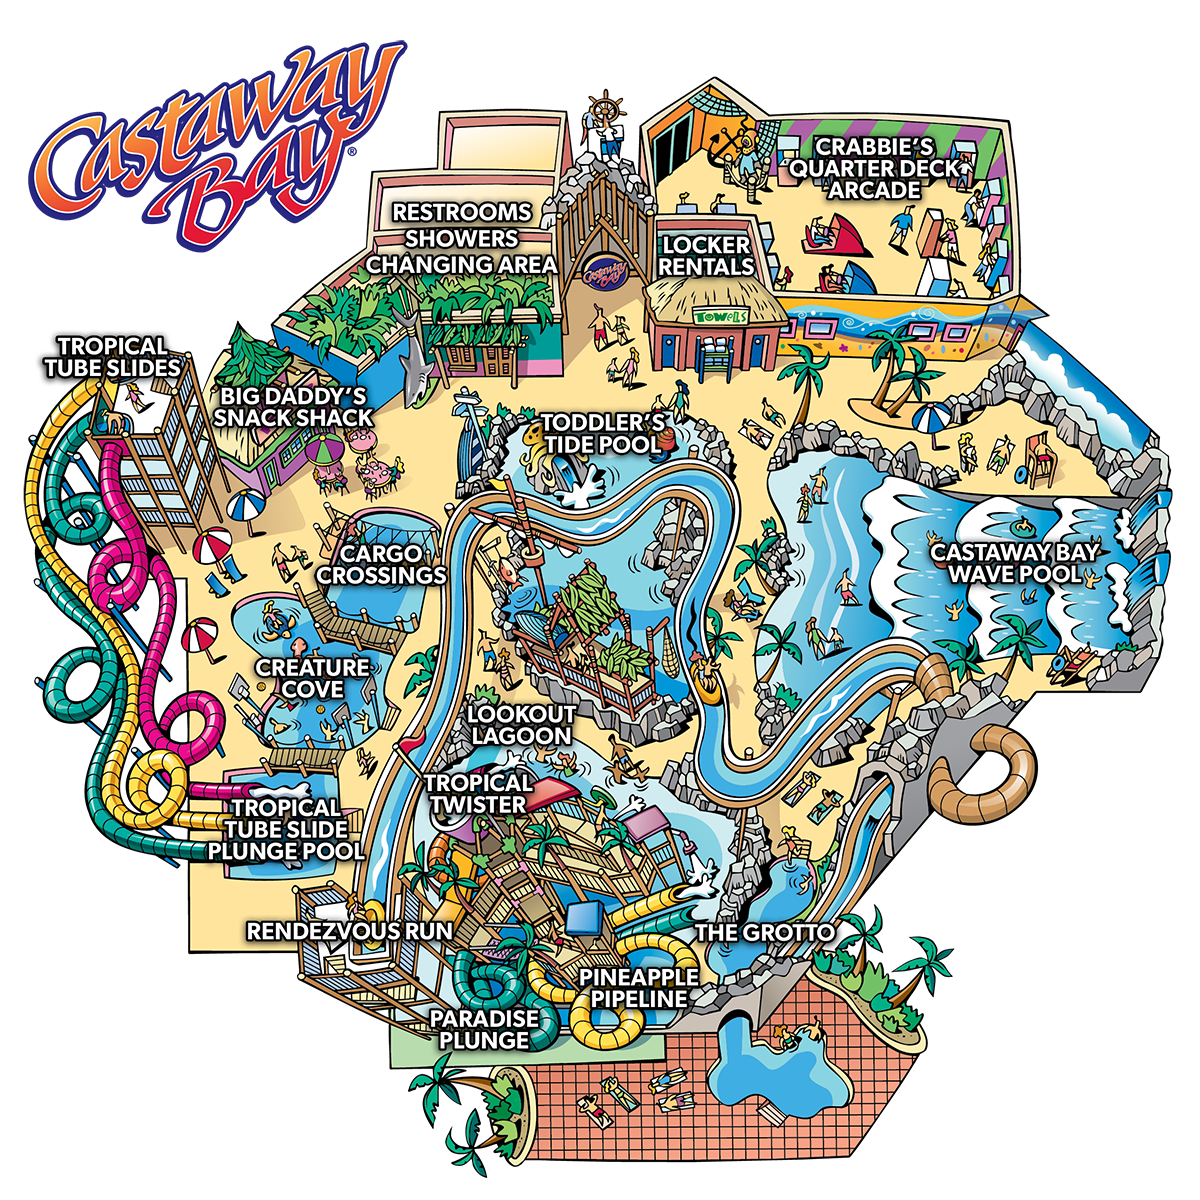 Castaway Bay Waterpark Map